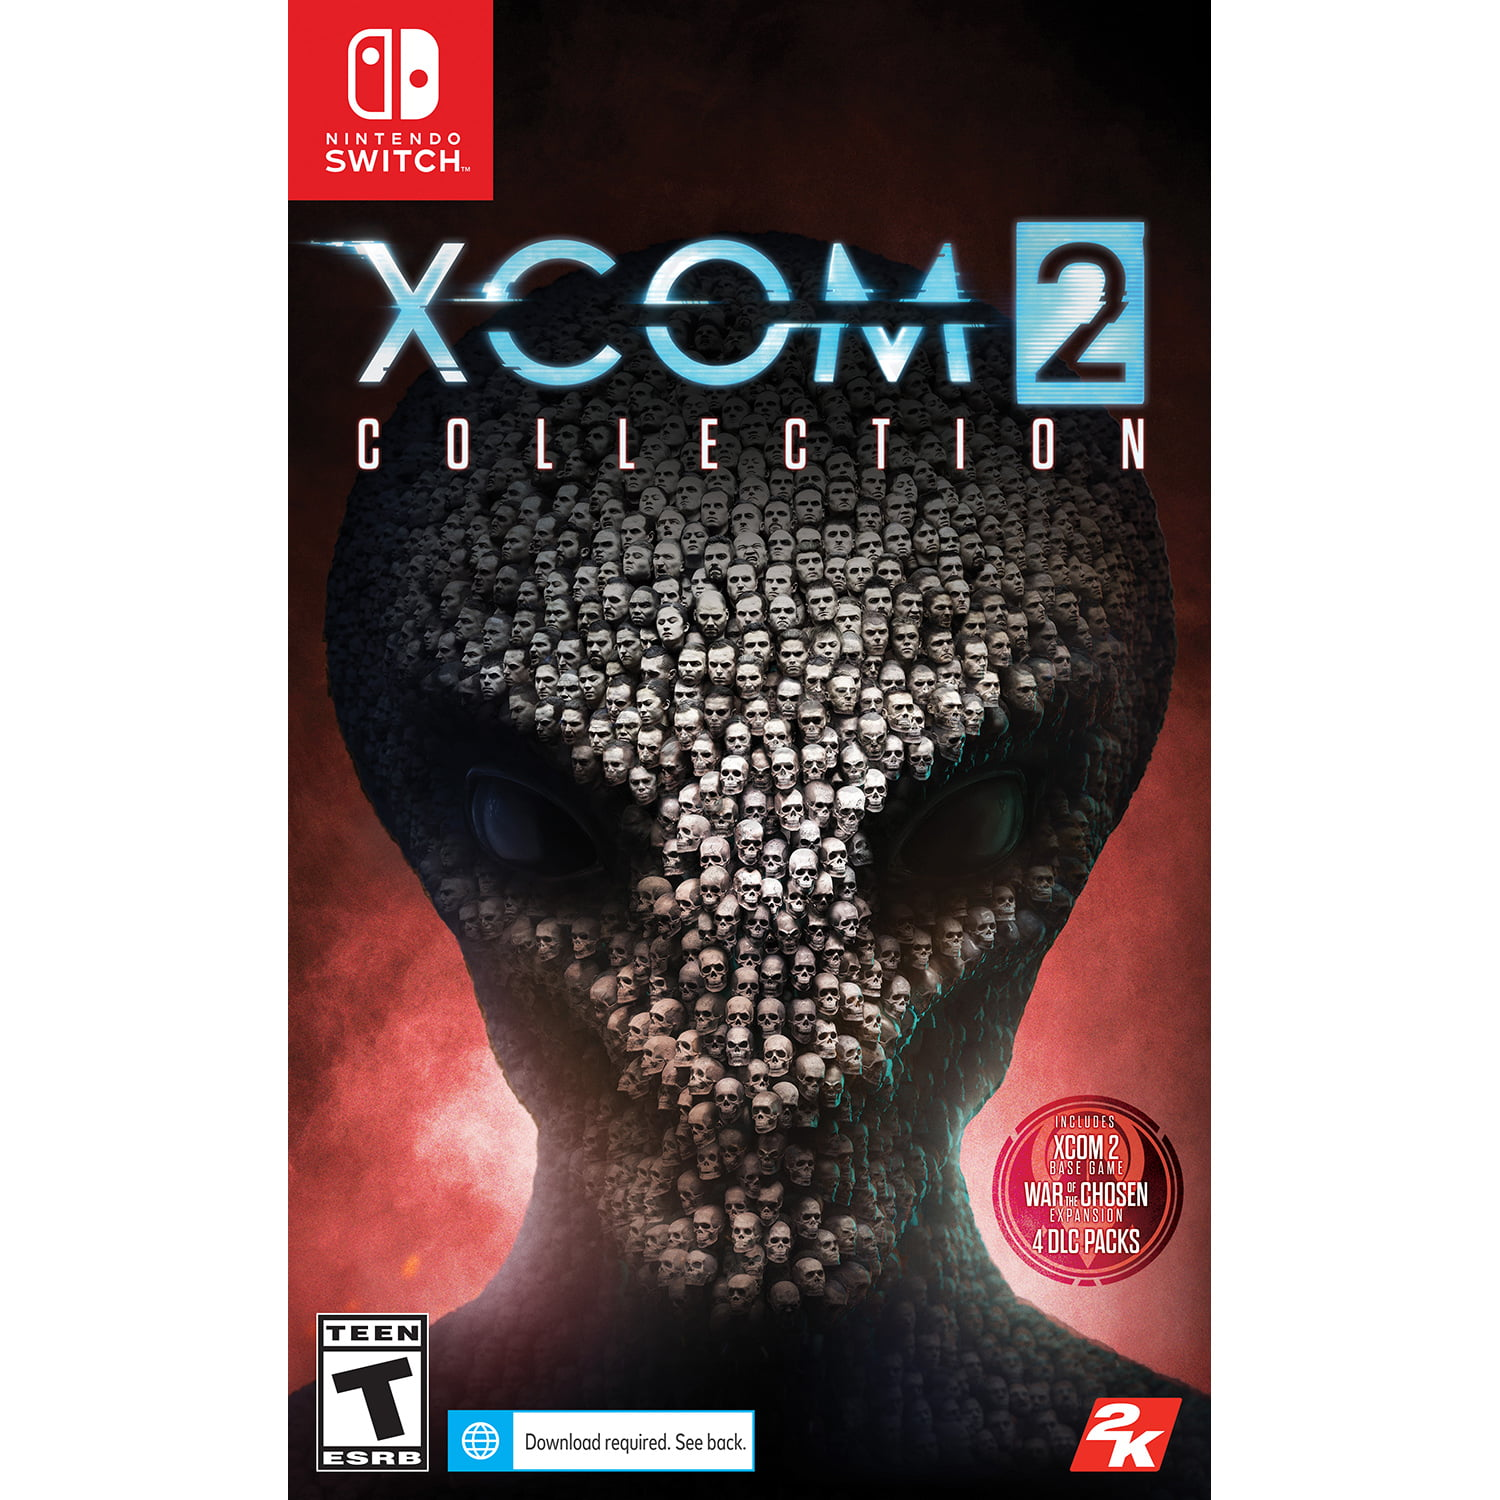 Xcom 2 Collection for Nintendo Switch